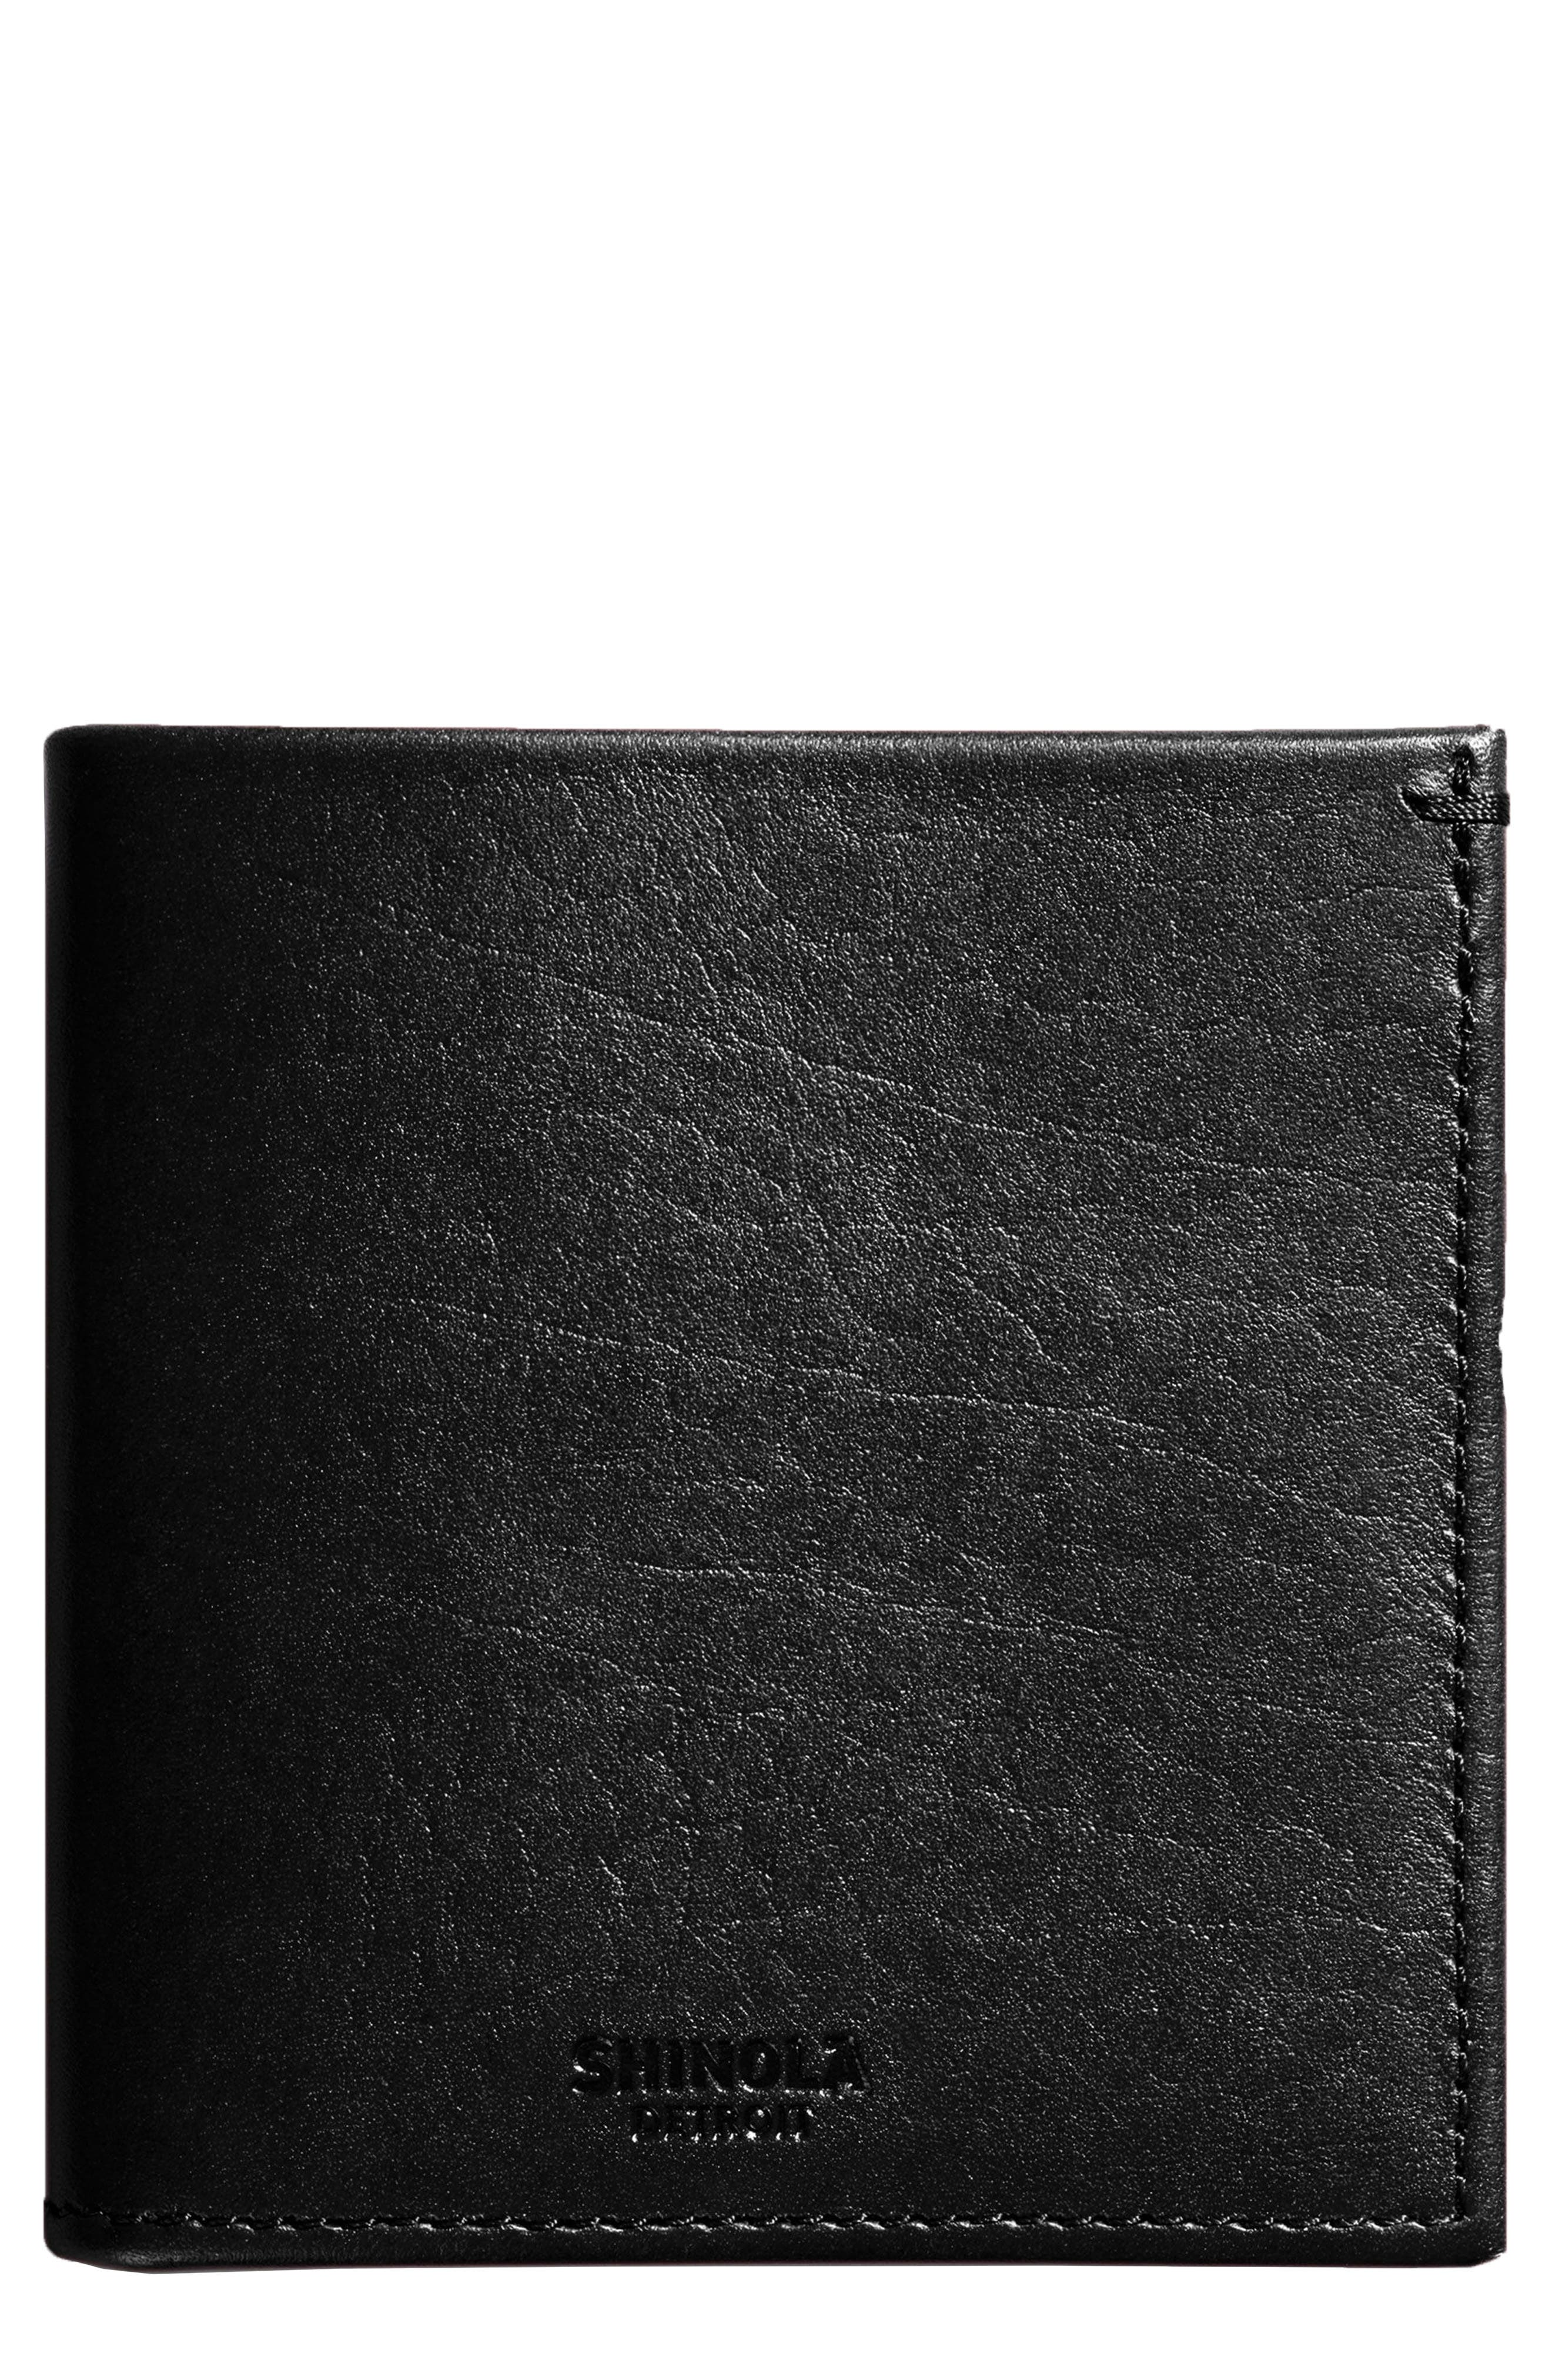 Square Bifold Leather Wallet,                             Main thumbnail 1, color,                             001